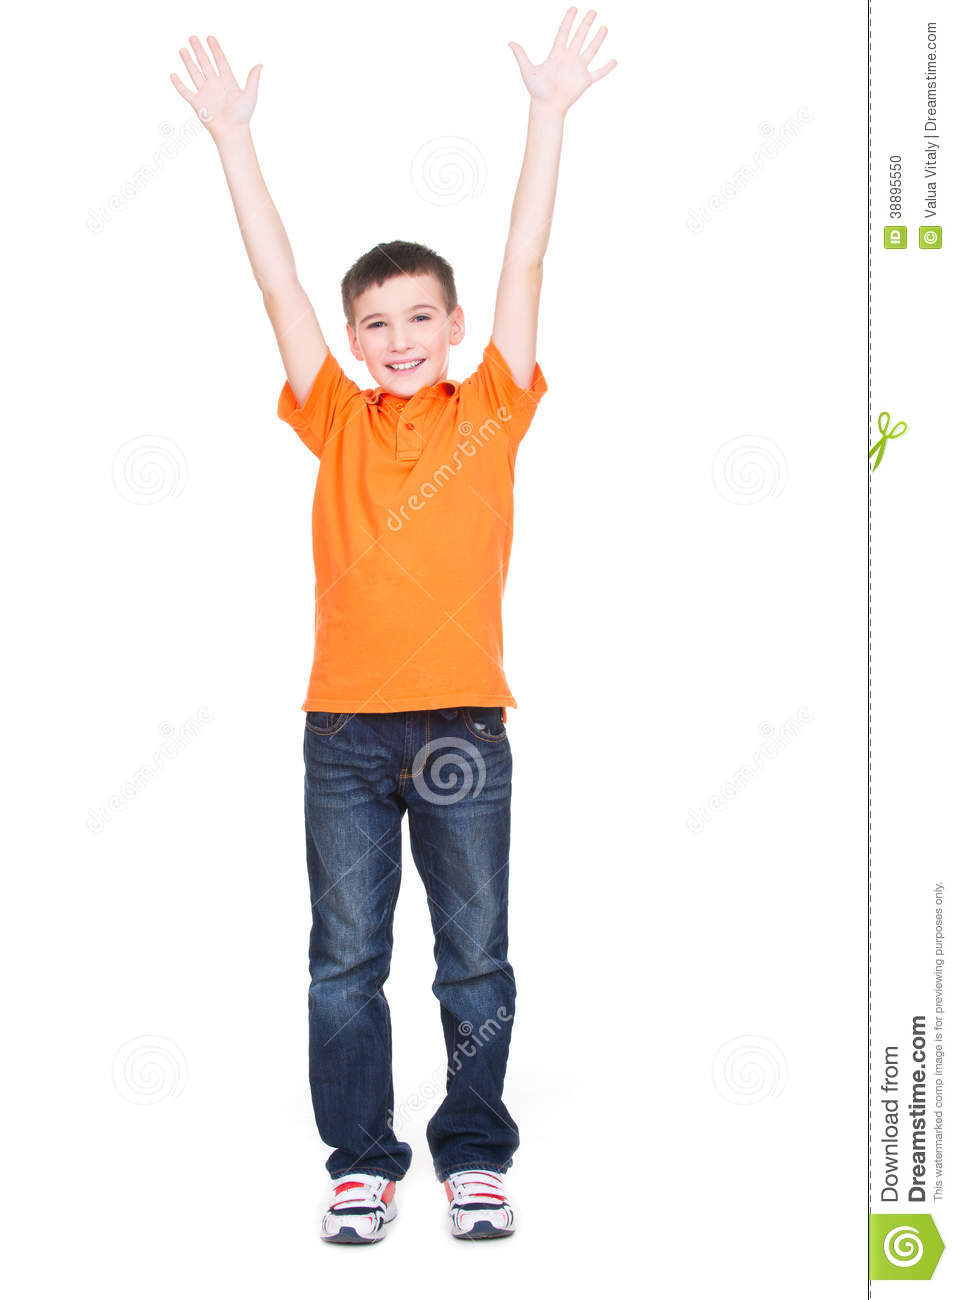 Happy Boy With Raised Hands Up. Stock Photo - Image: 38895550